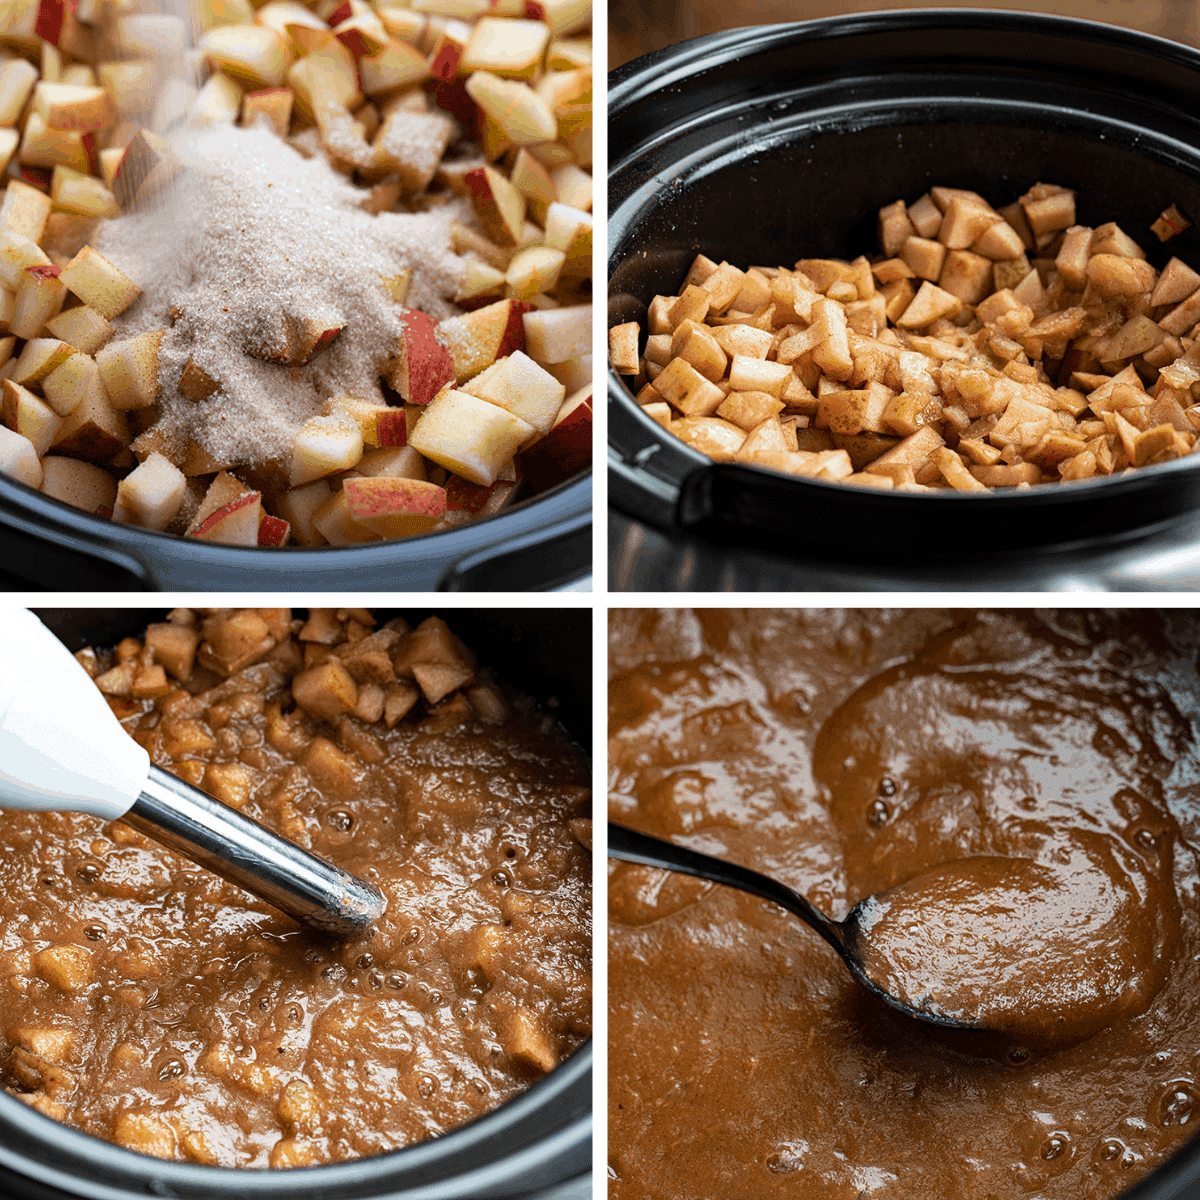 Processes for Making Apple Butter